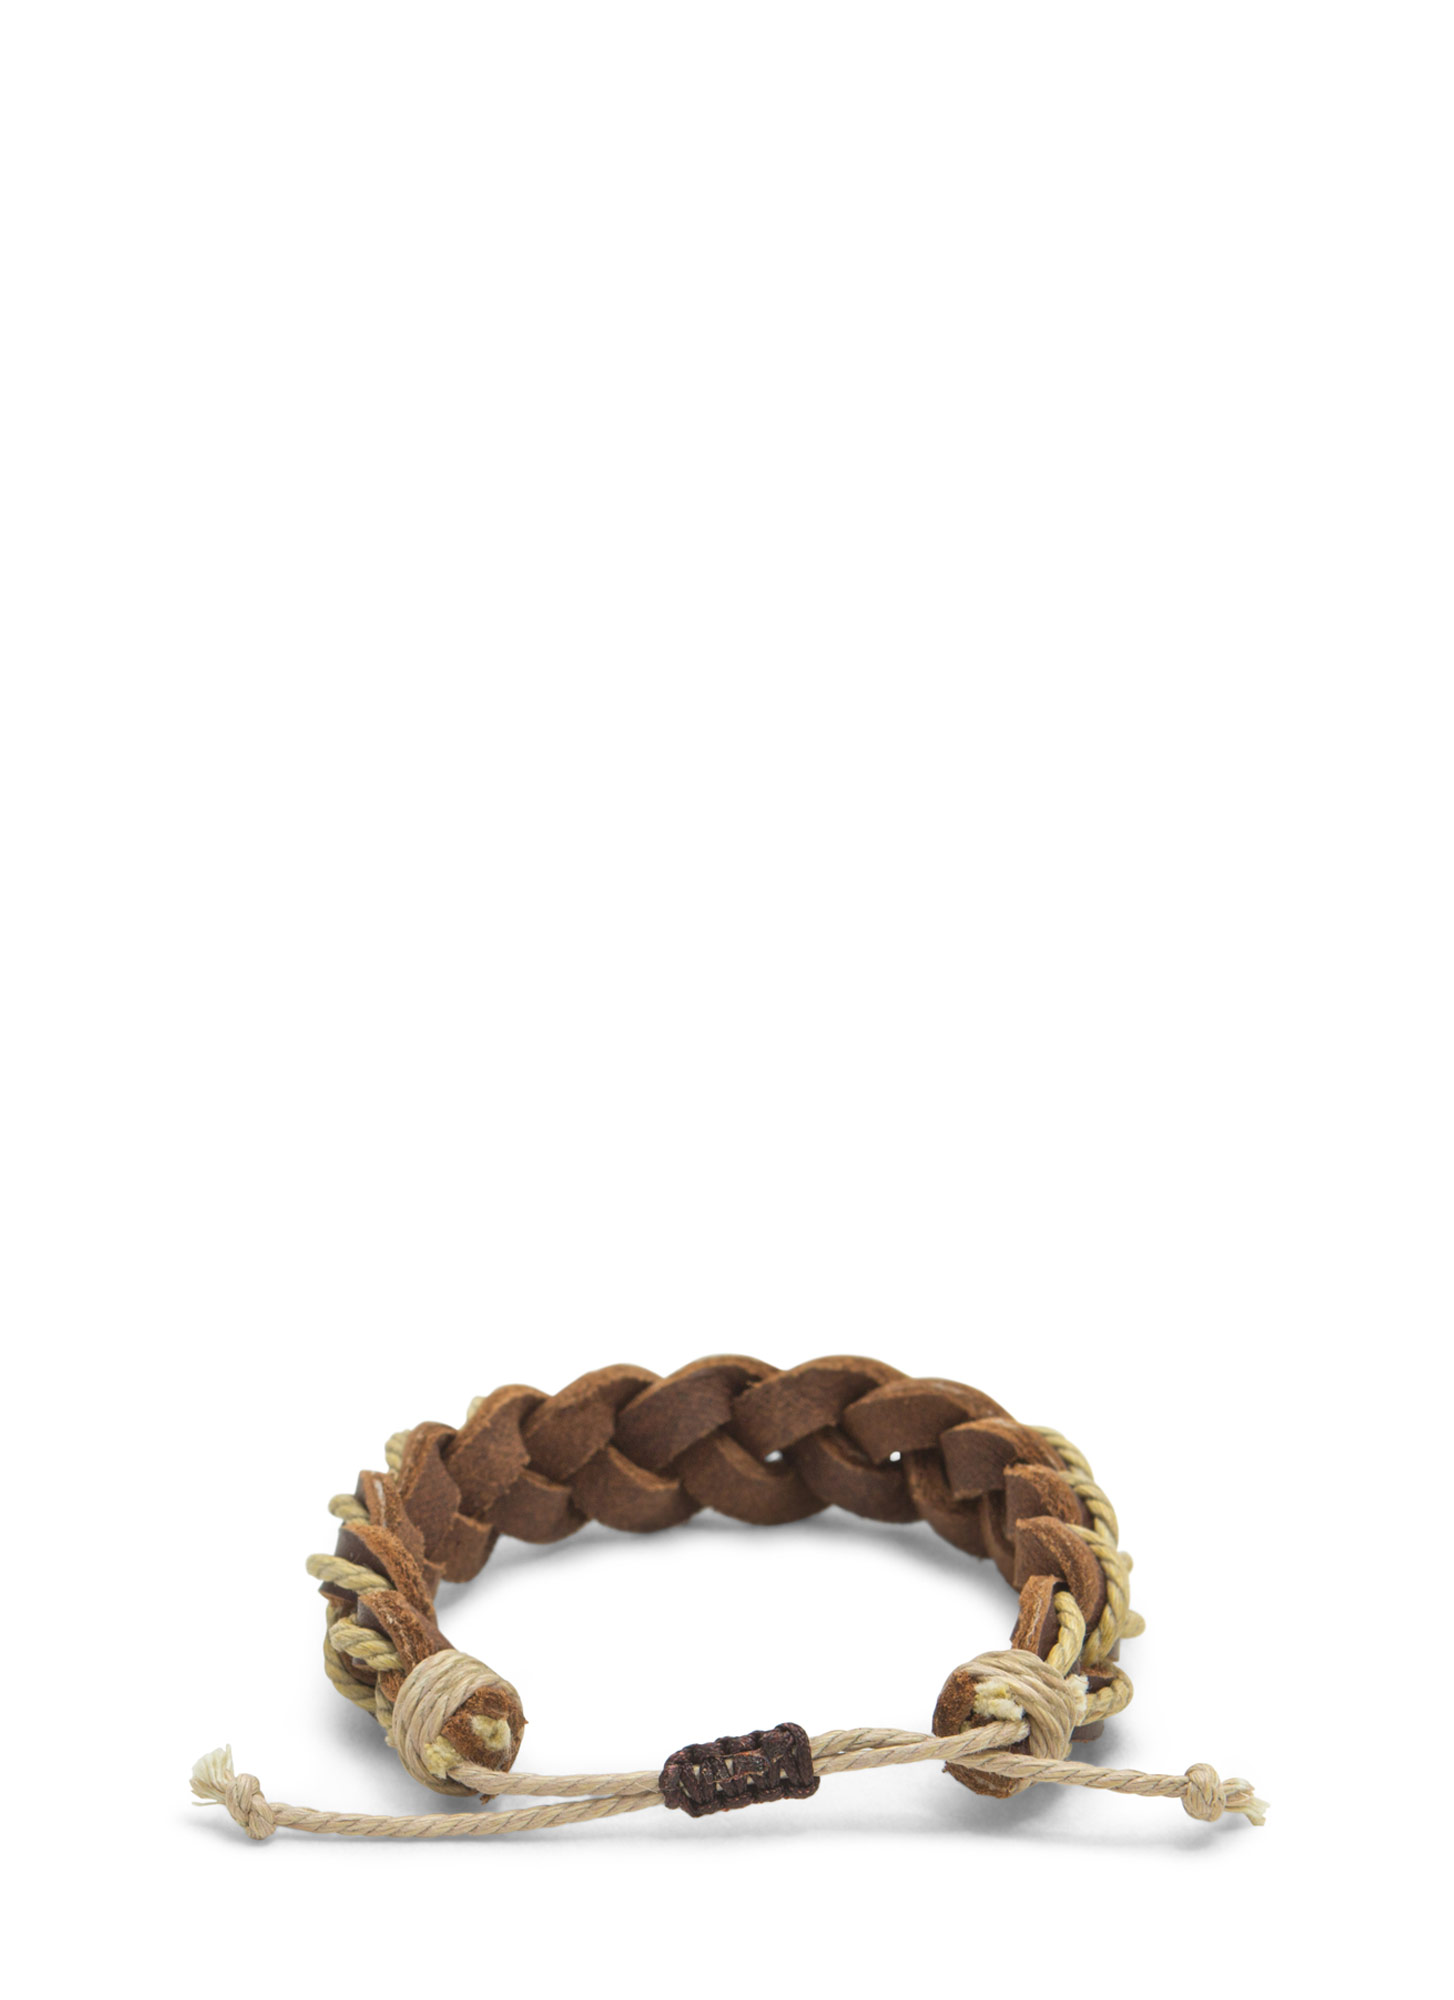 Boho Braided Faux Leather Bracelet BROWNTAUPE